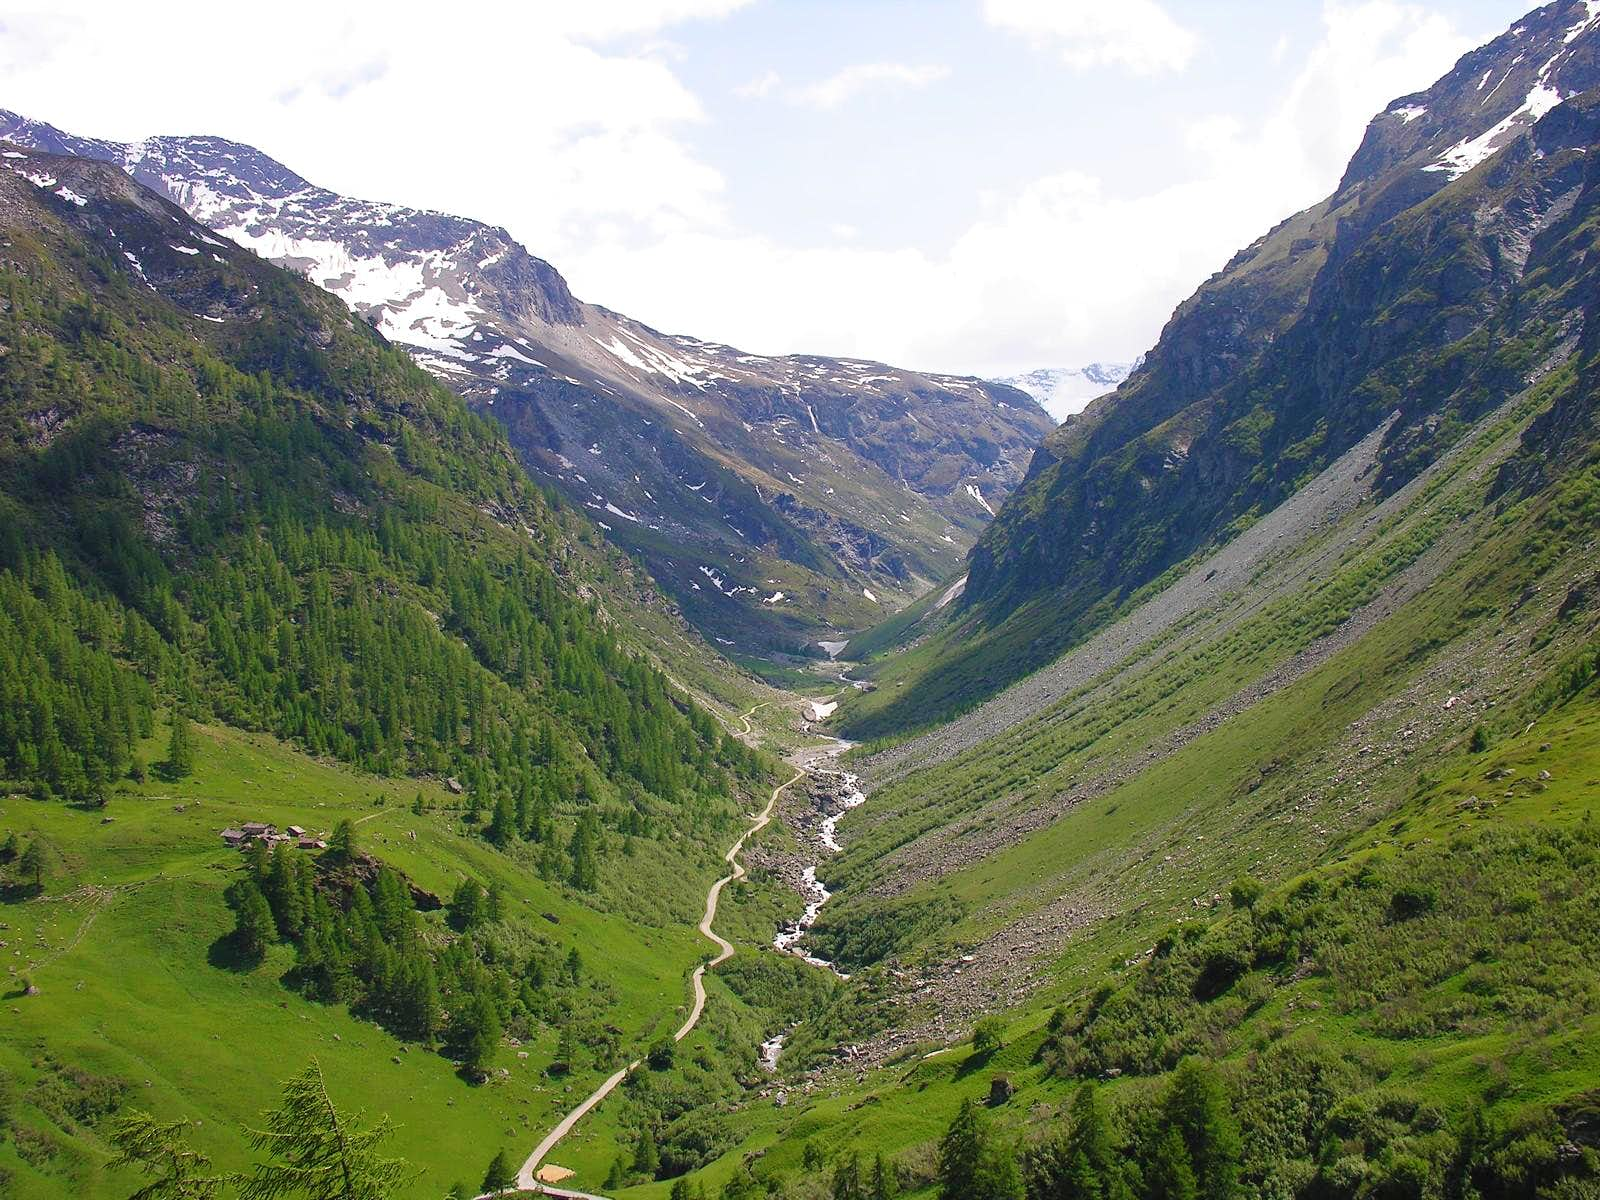 One-week trip around Castles Churches and Shrines: High South Valley (Valgrisa/La Thuile) / D-2